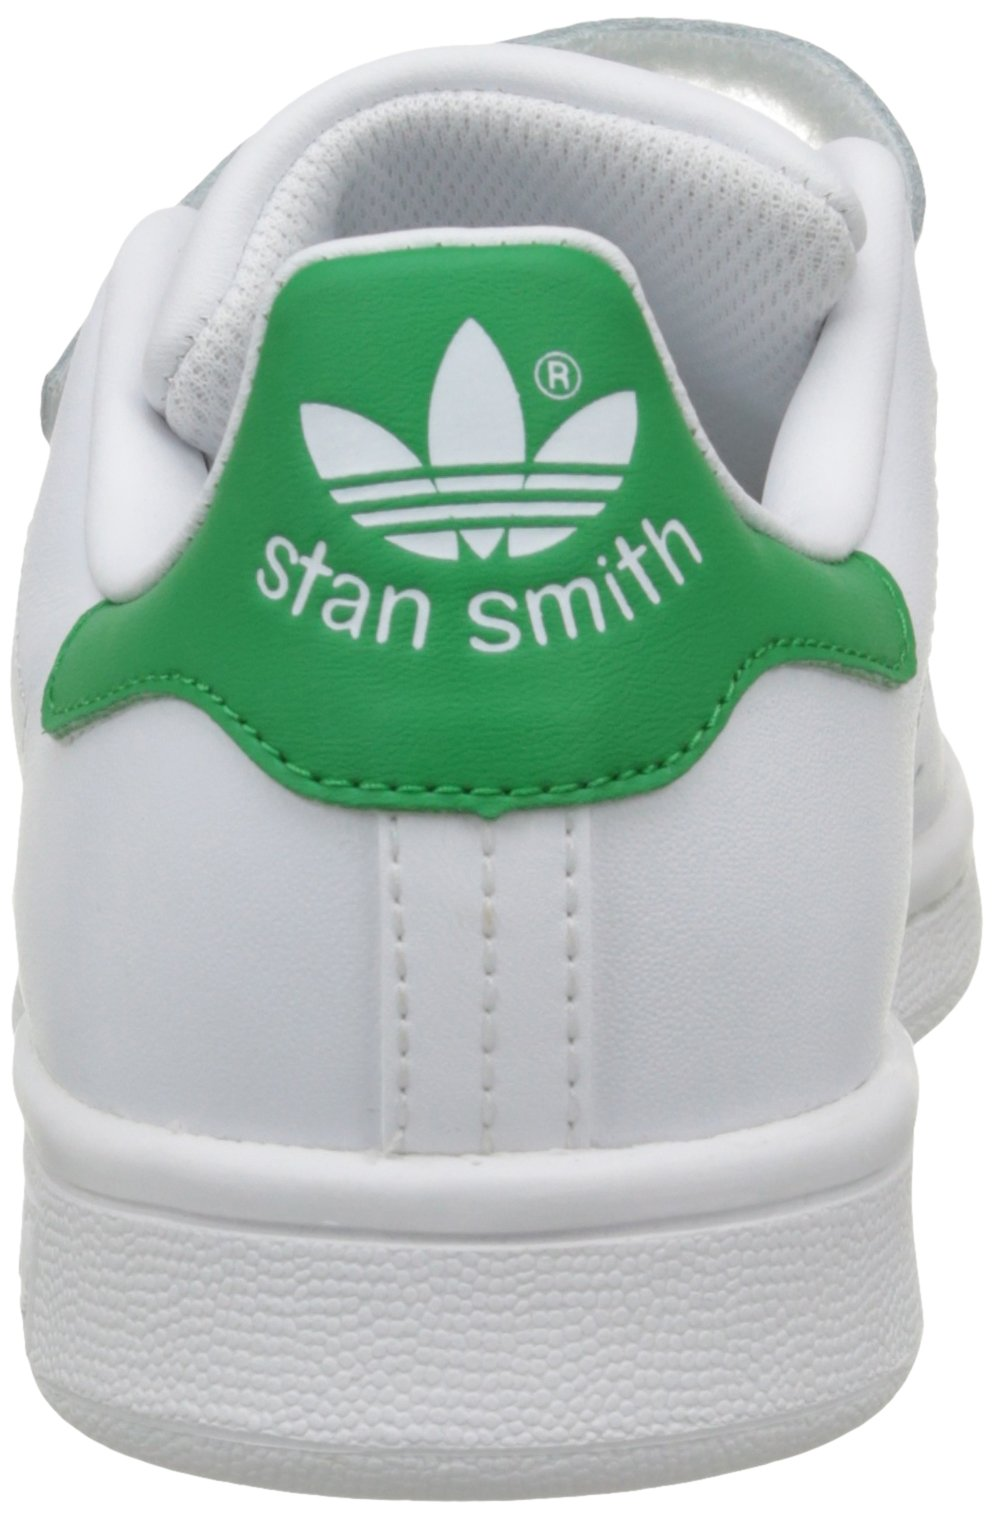 big sale 9d3d3 2c672 adidas S74778 Stan Smith Junior Scarpe da Ginnastica Basse Bambino